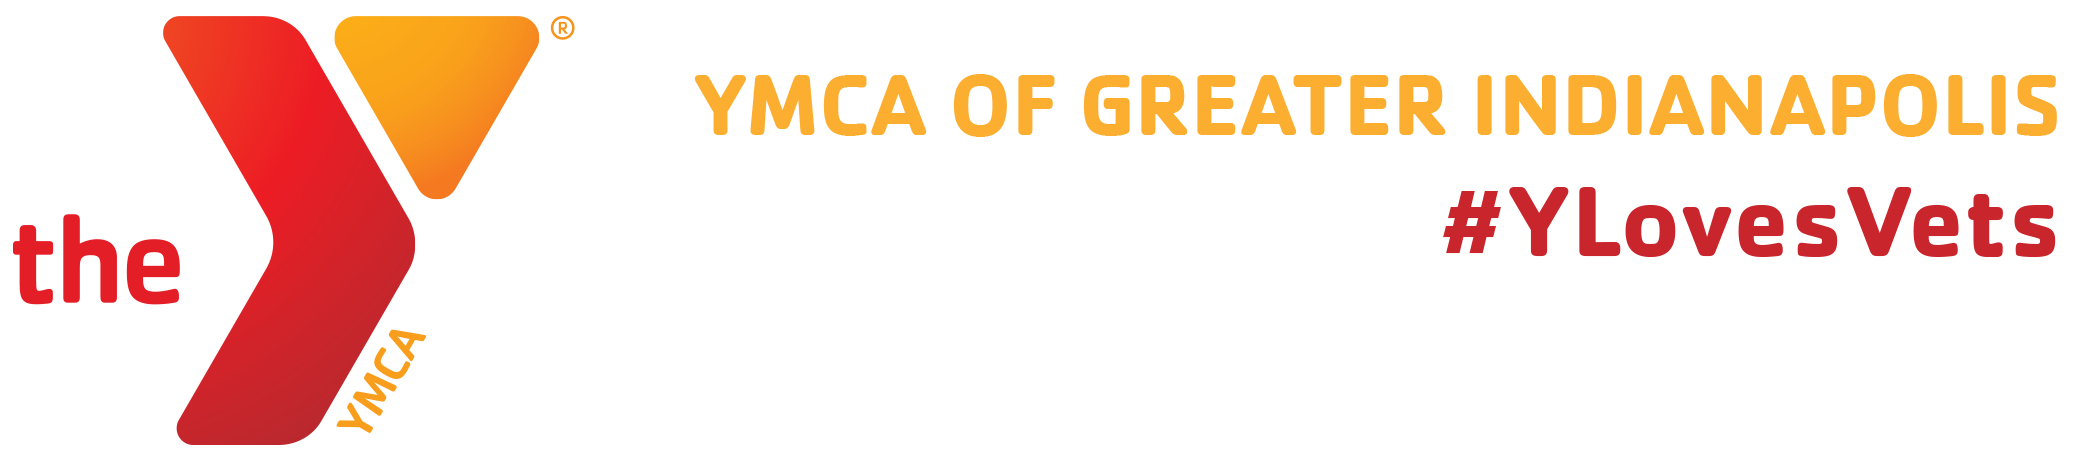 cropped-ymca-red_yellow_with-copy-line_alt1.png